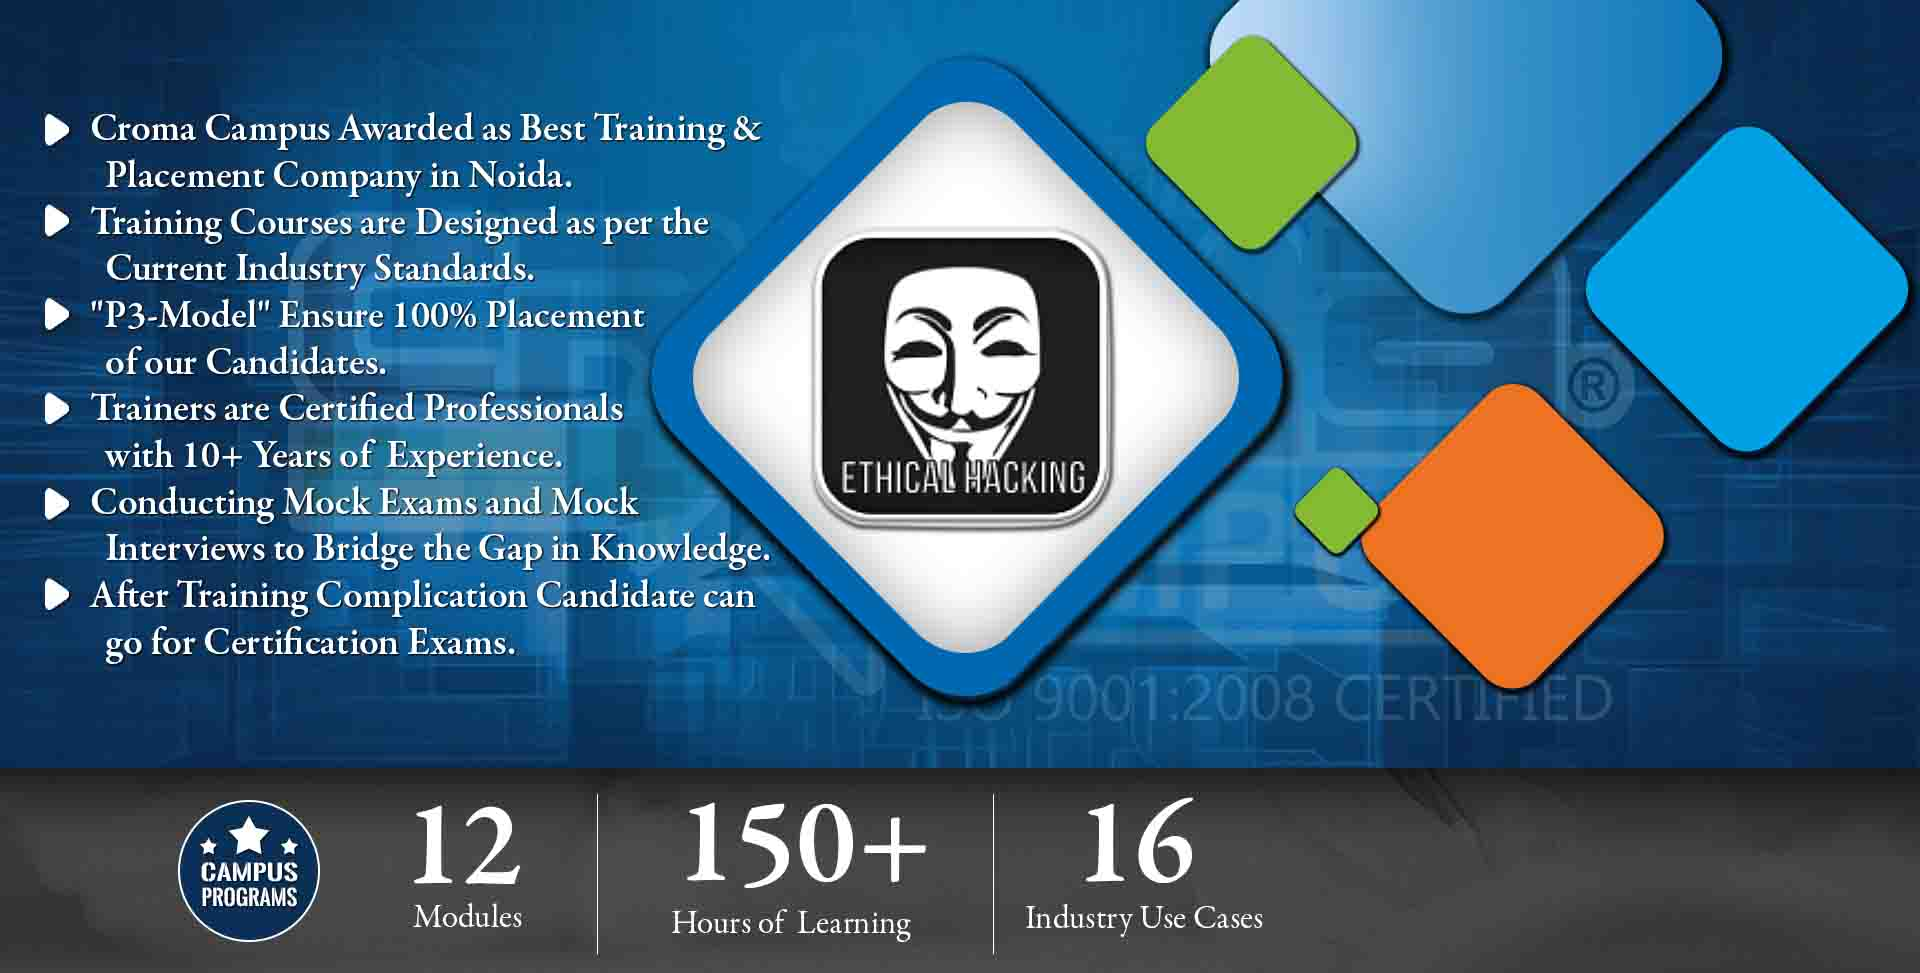 Ethical Hacking Training in Delhi NCR- Croma Campus